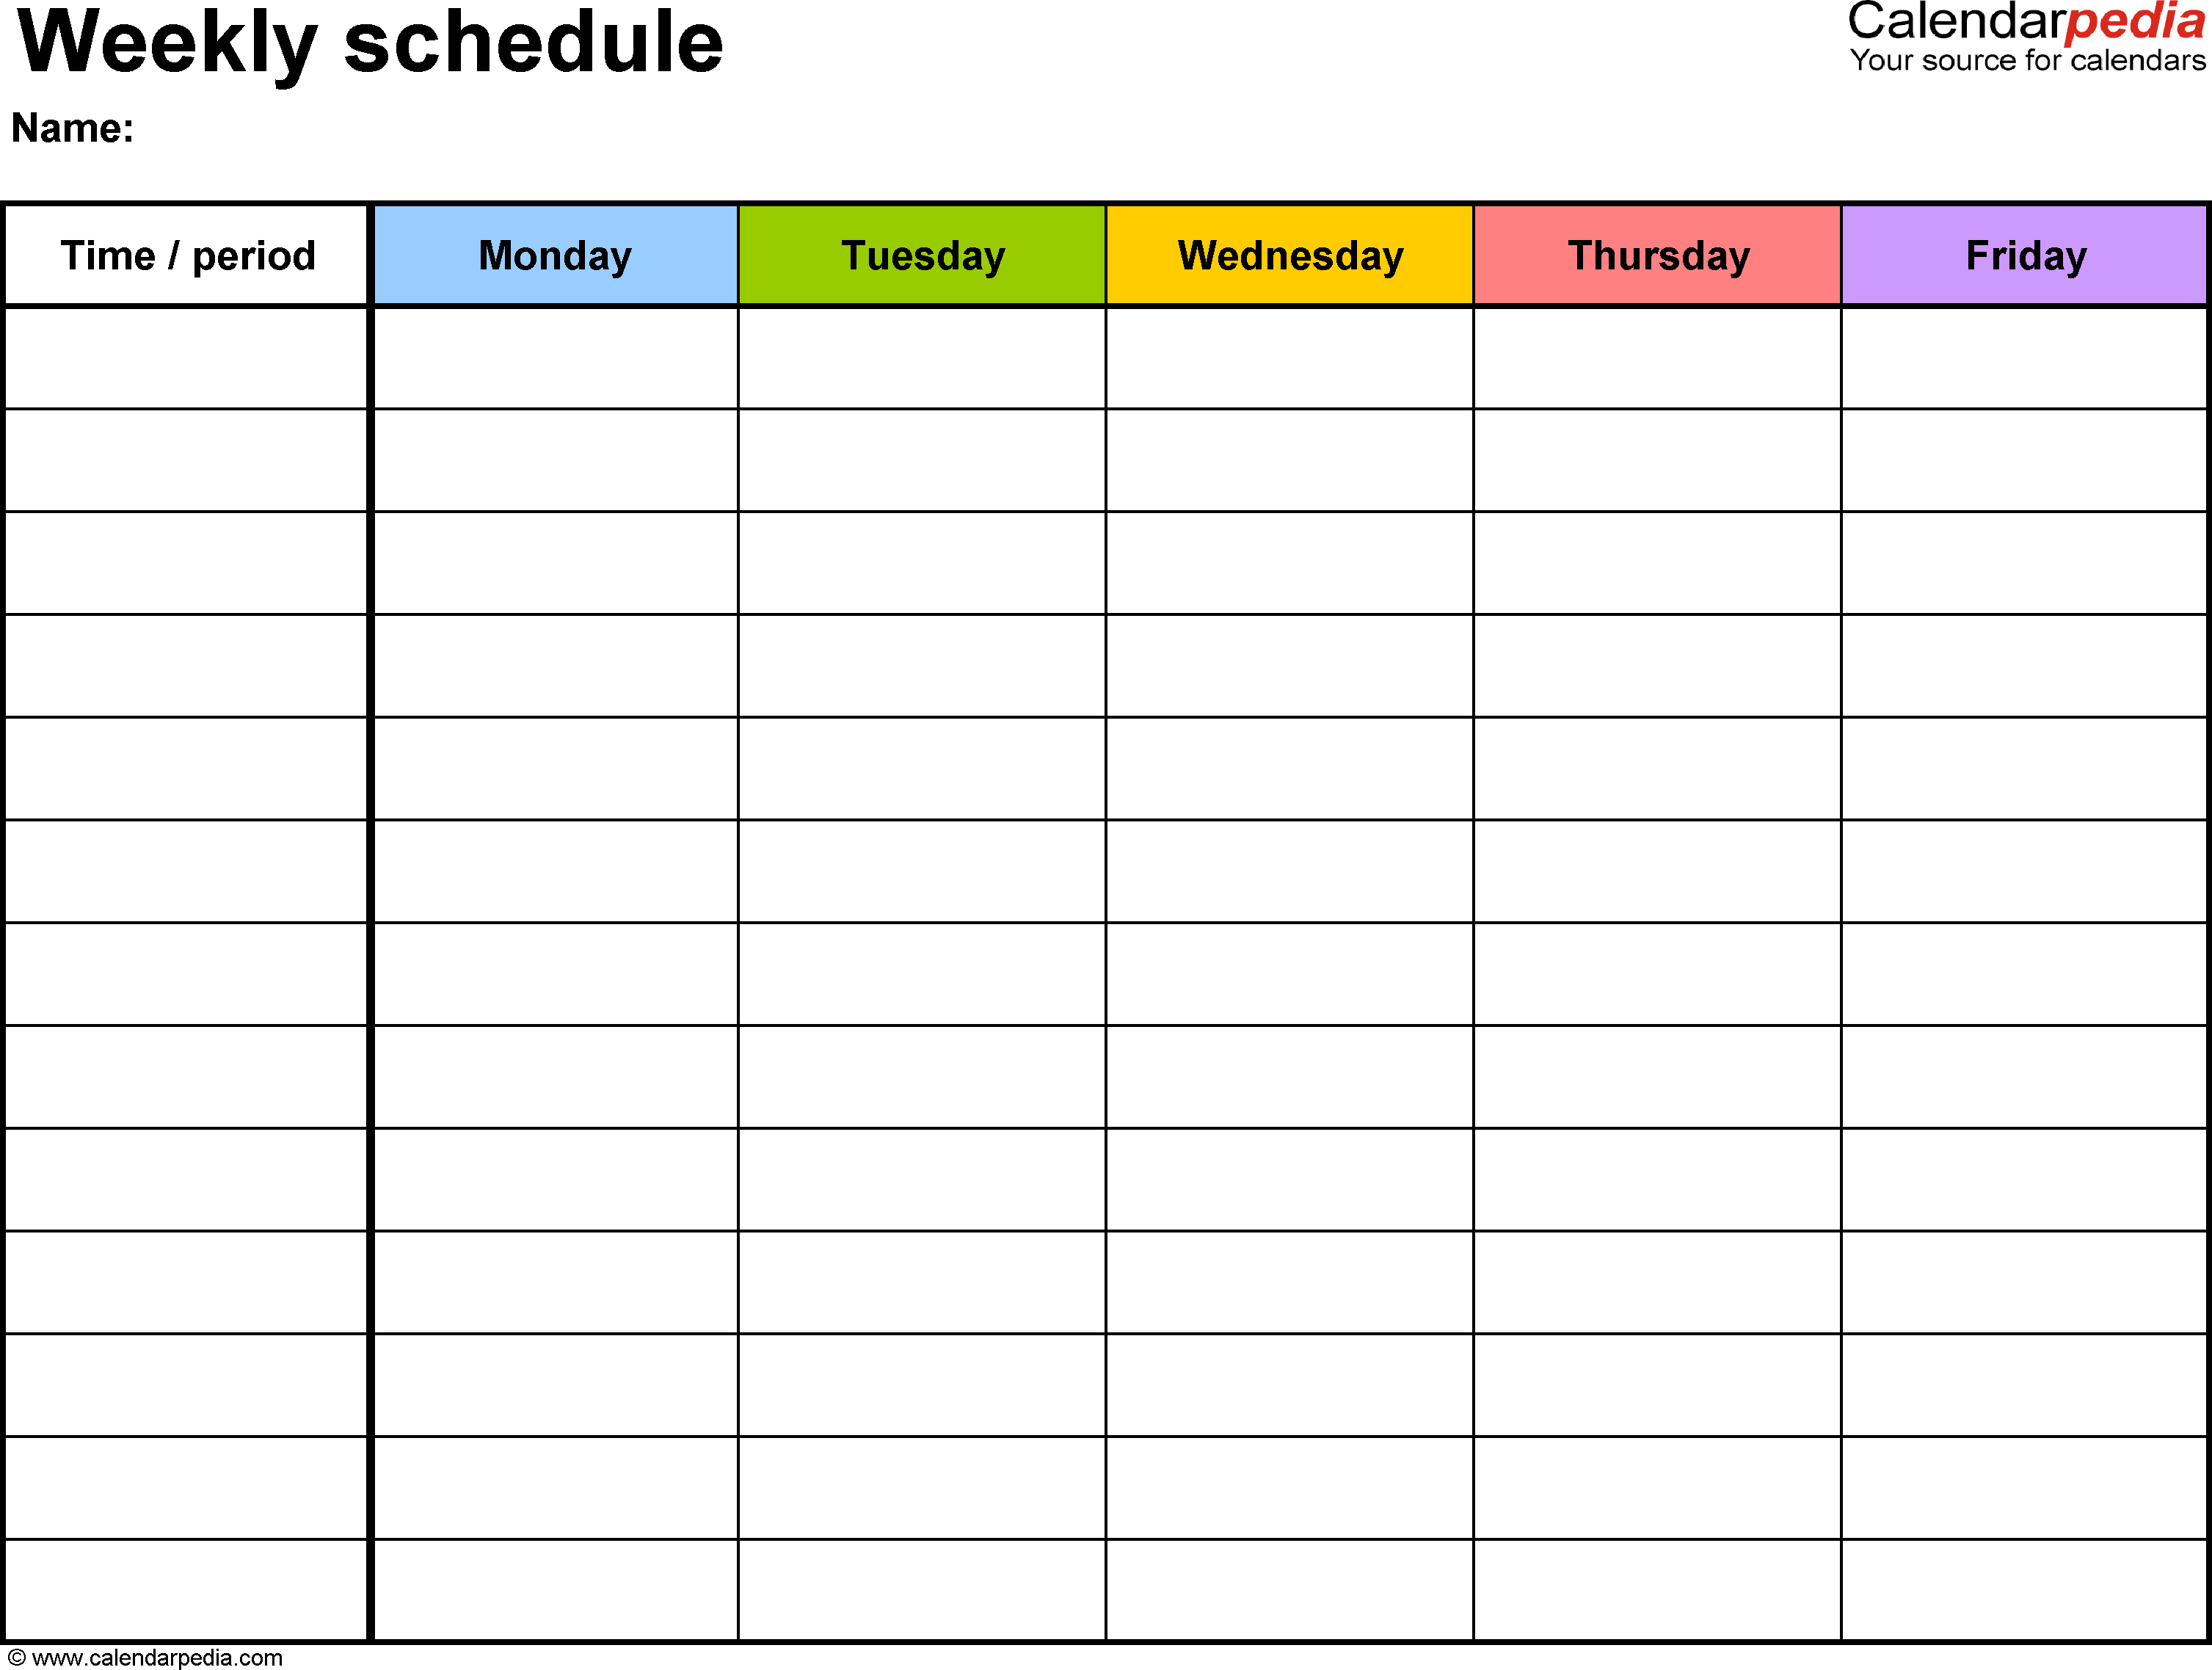 Free Weekly Schedule Templates For Word - 18 Templates - Free Printable Monthly Work Schedule Template